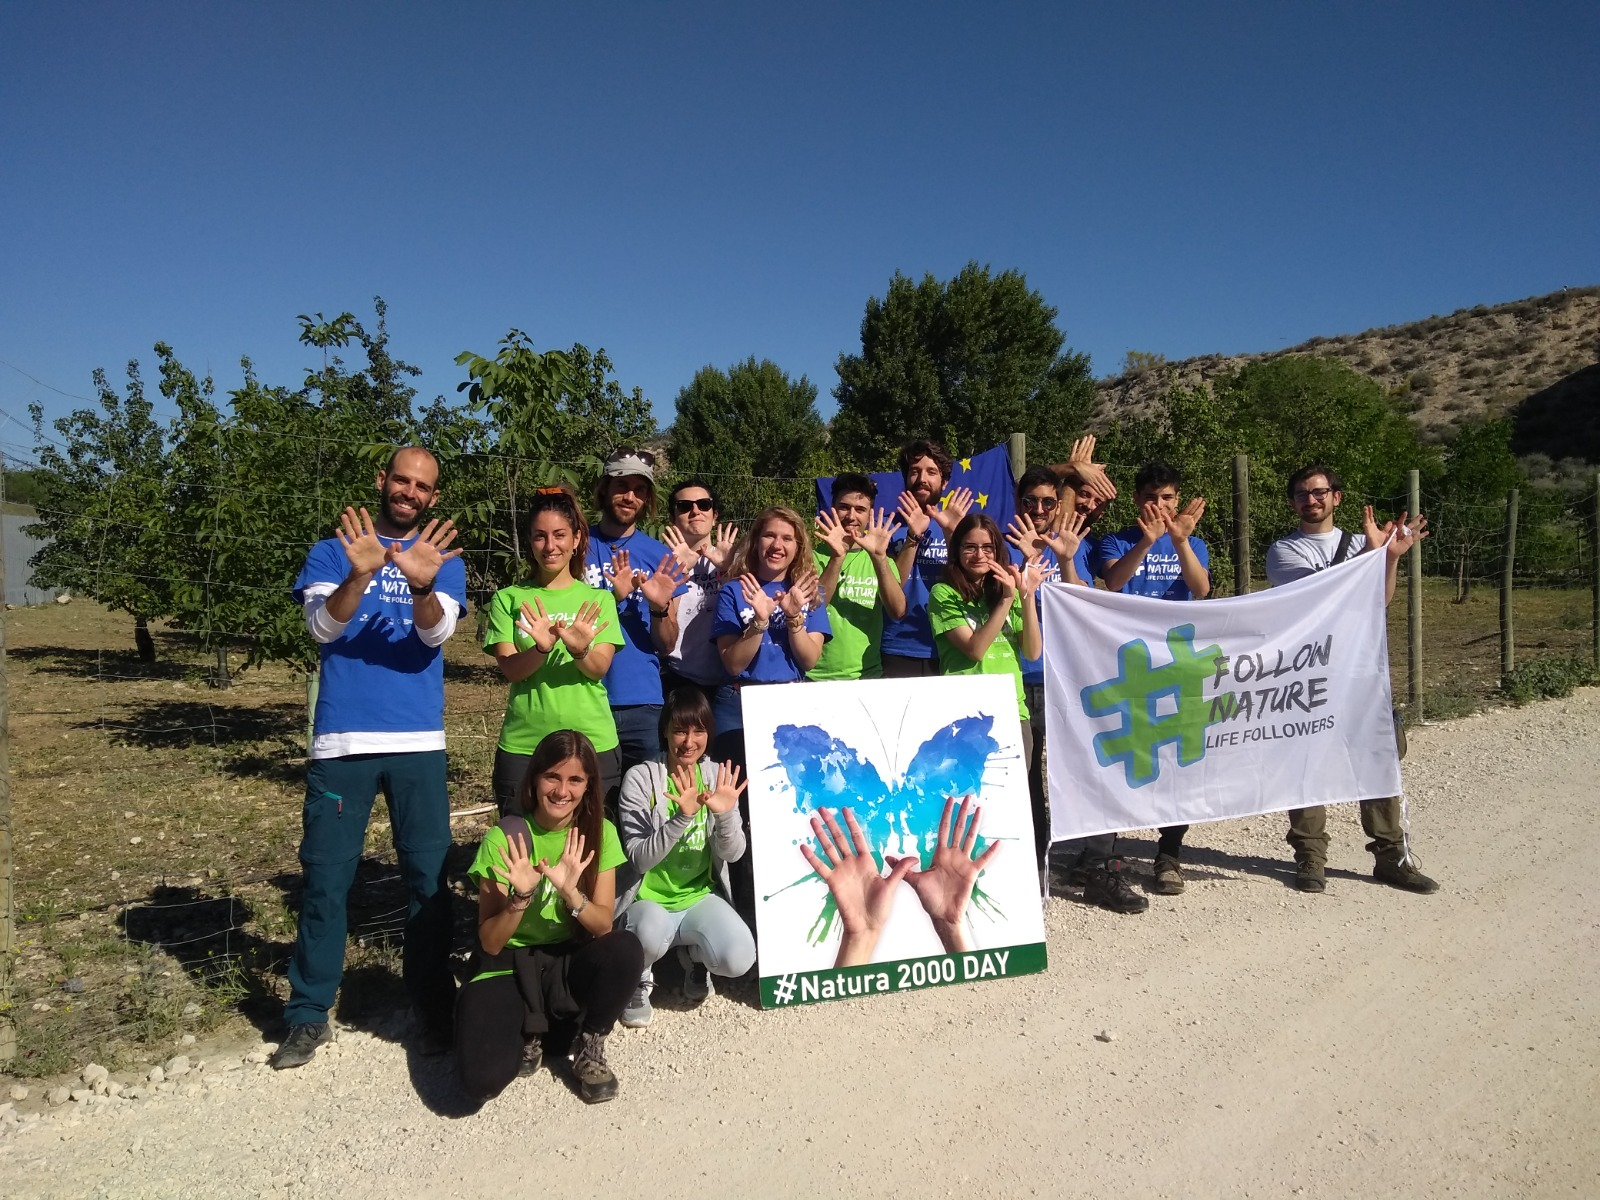 May 21st, #Natura2000Day: The Real Followers of the Natura 2000 Network.